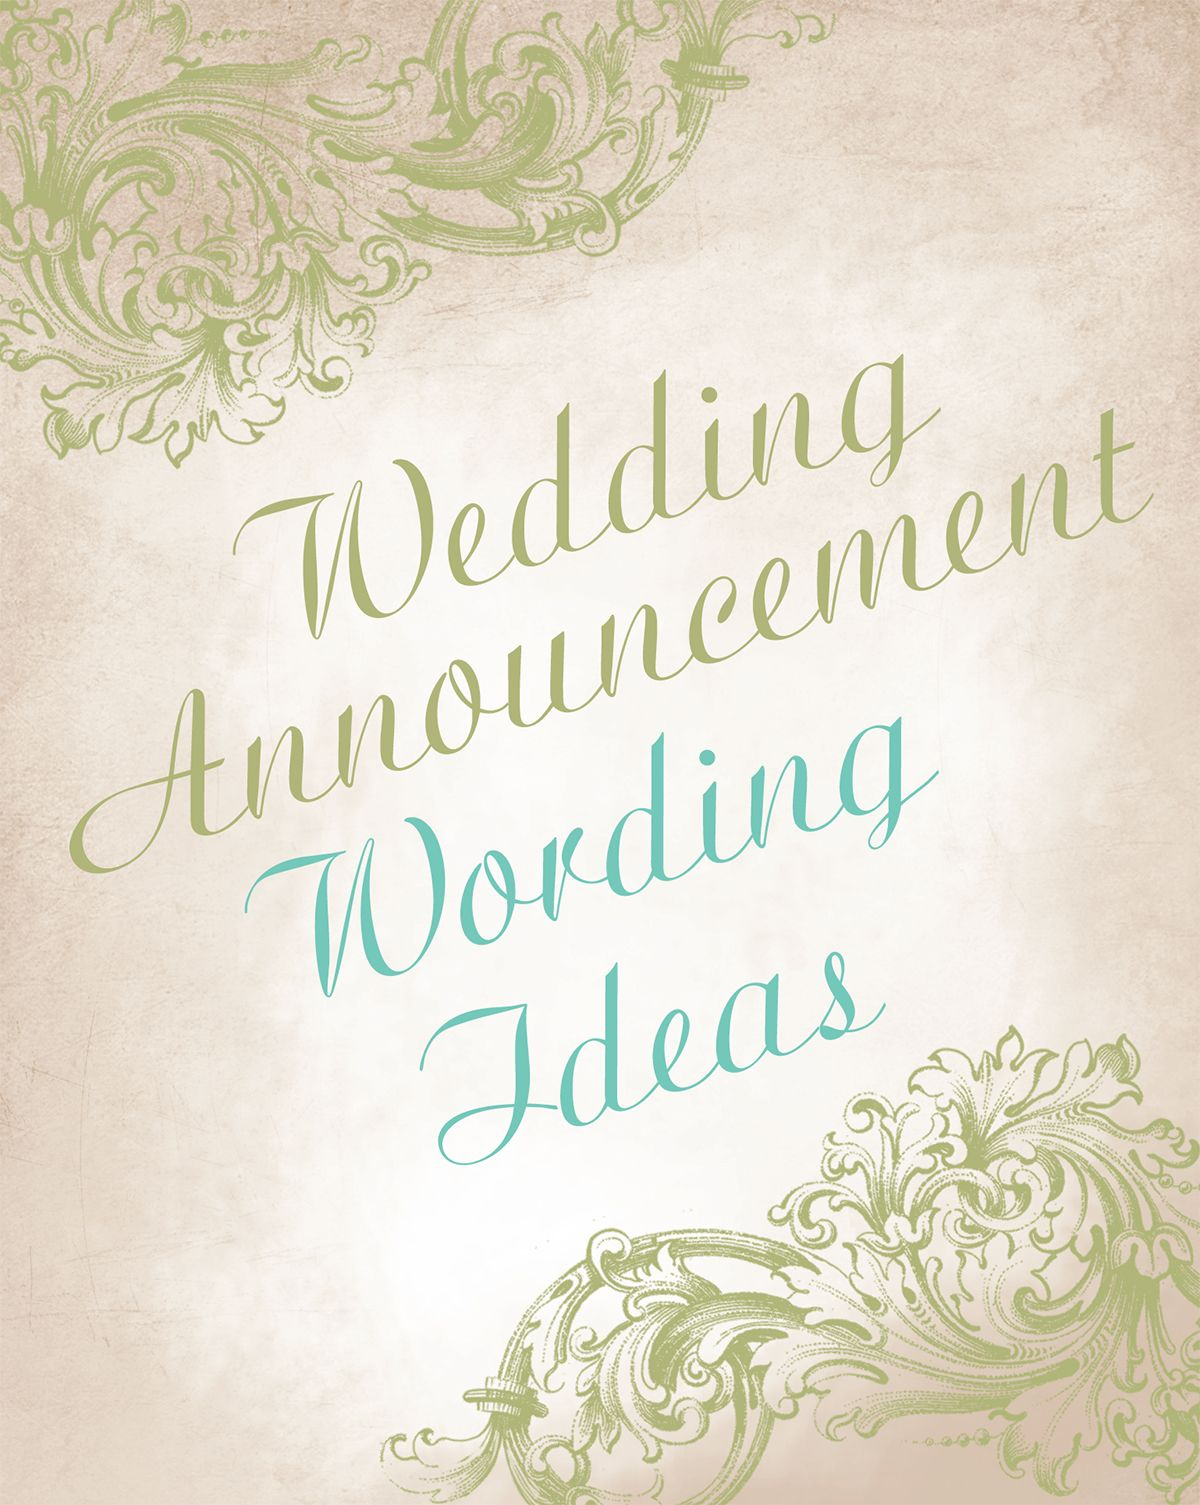 Wedding Announcement Wording Ideas Advice And Ideas Invitations By Dawn Wedding Announcements Wording Wedding Announcements Wedding Annoucements